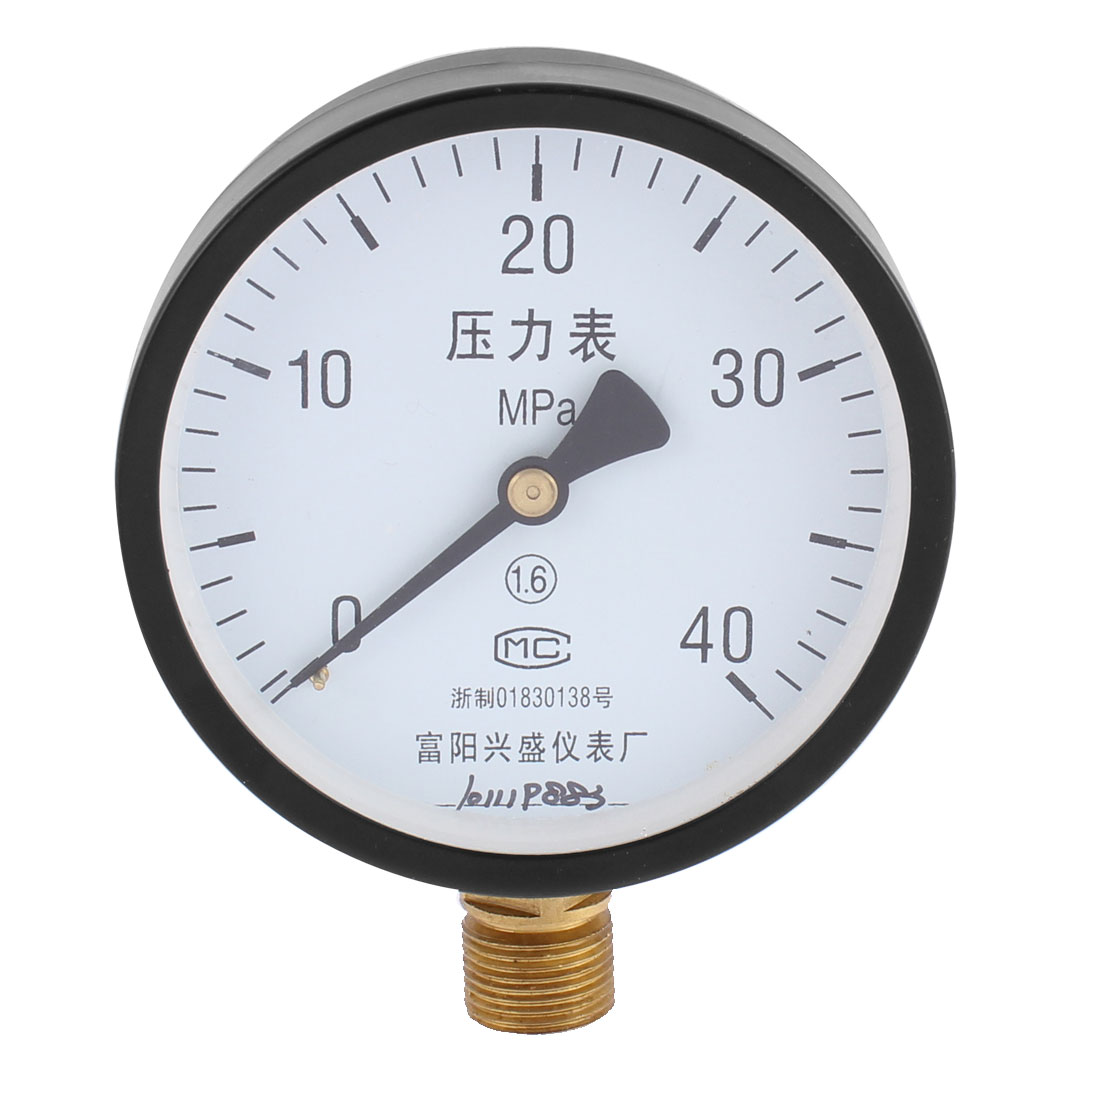 20mm 1/2BSP Male Thread 0-40MPa Mesearing Round Dial Air Compressor Pressure Gauge Meter